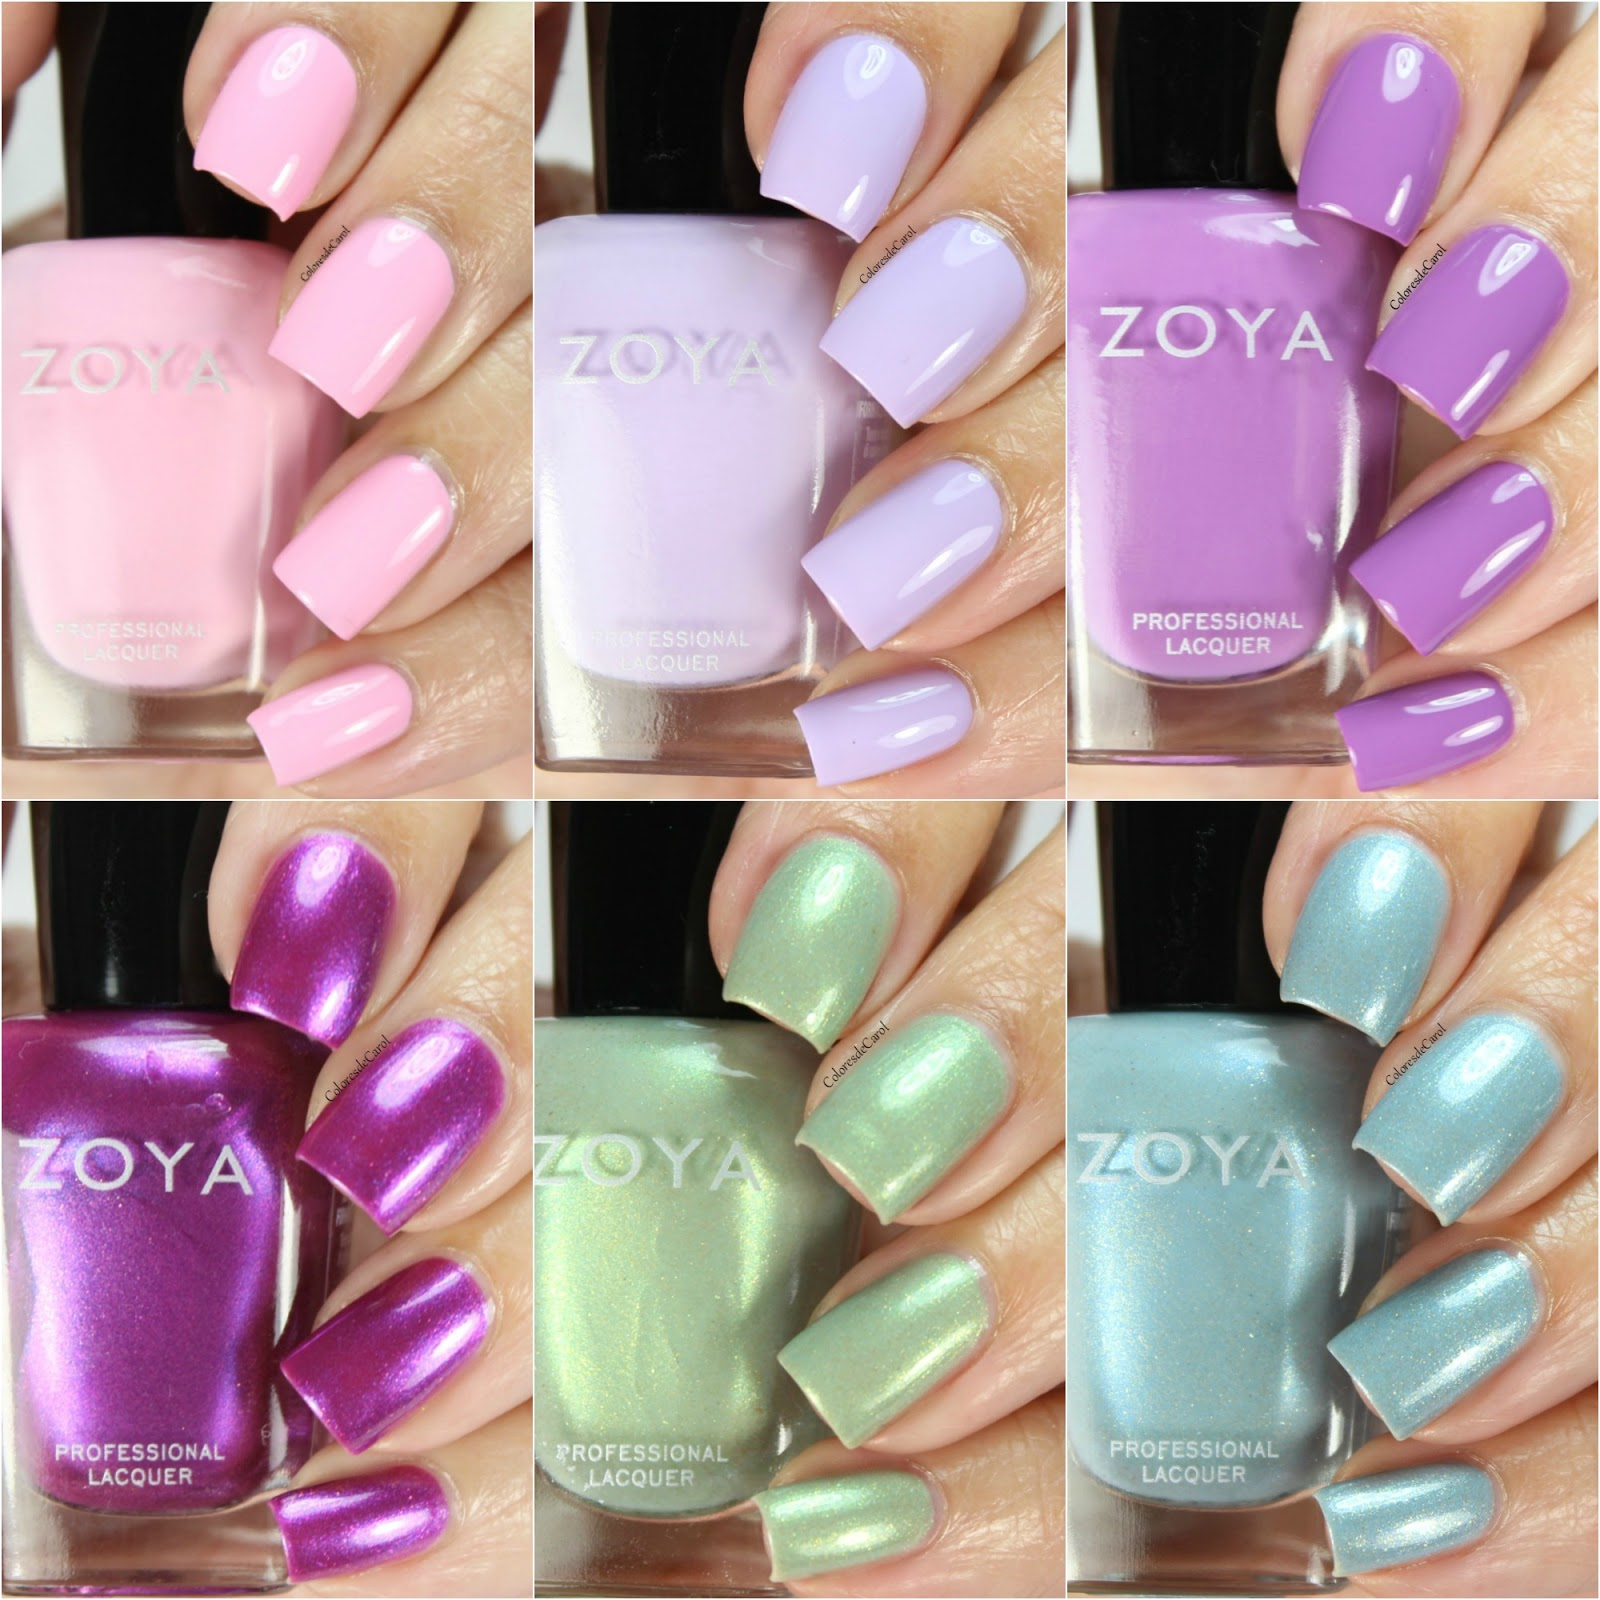 Colores de carol zoya charming collection spring 2017 hello today i have or you the new charming collection from zoya for spring 2017 this collection consists of six shades three cremes and three shimmers reheart Choice Image